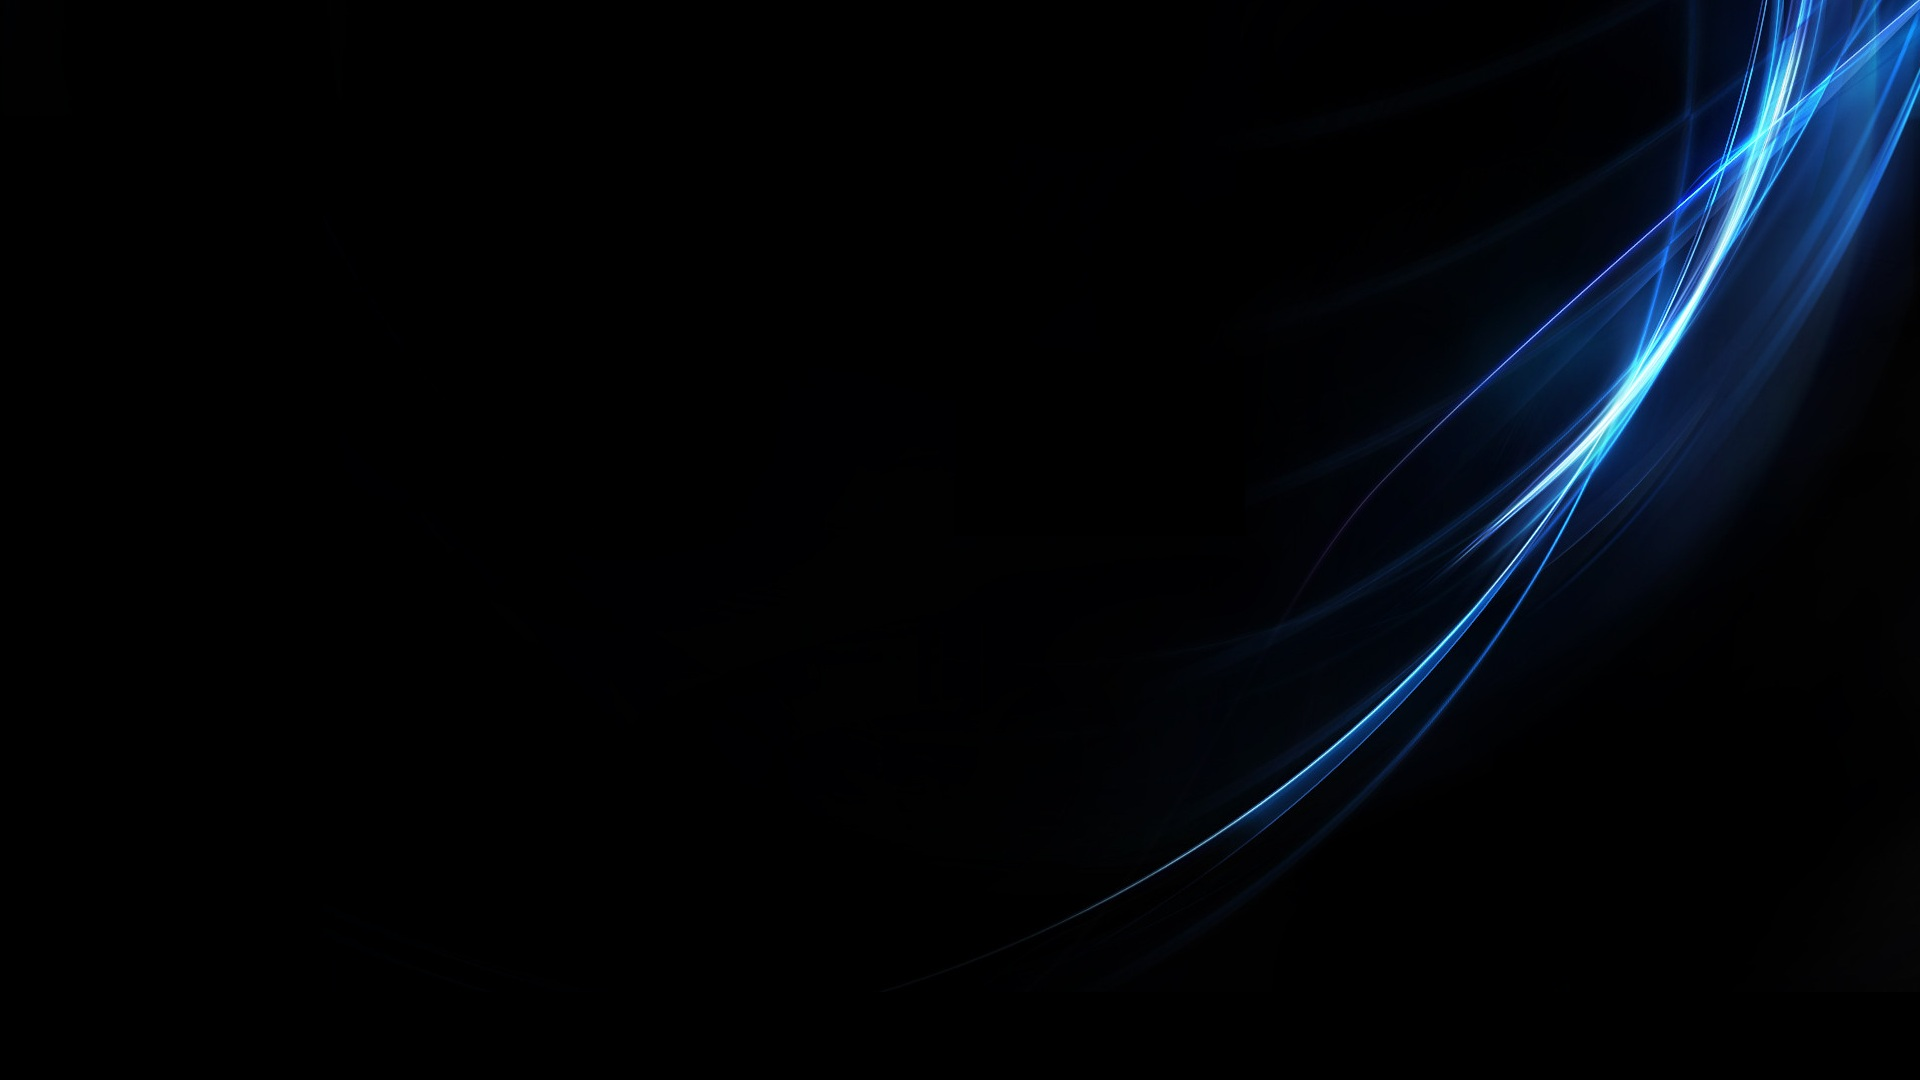 Abstract blue black minimalistic wallpaper 1920x1080 1920x1080